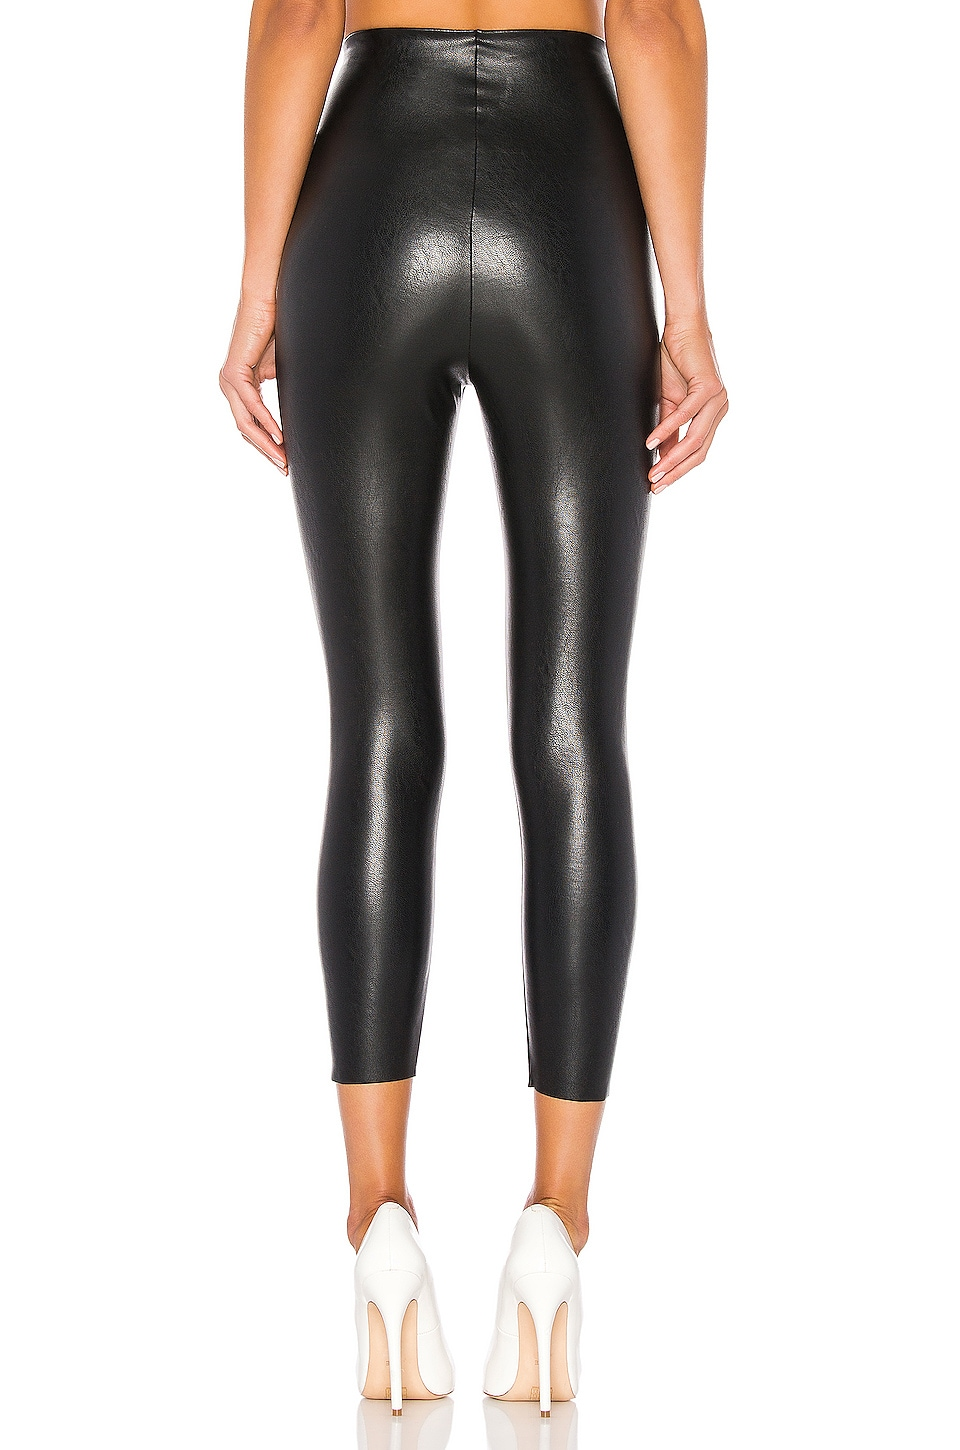 Perfect Control Faux Leather Capri, view 3, click to view large image.